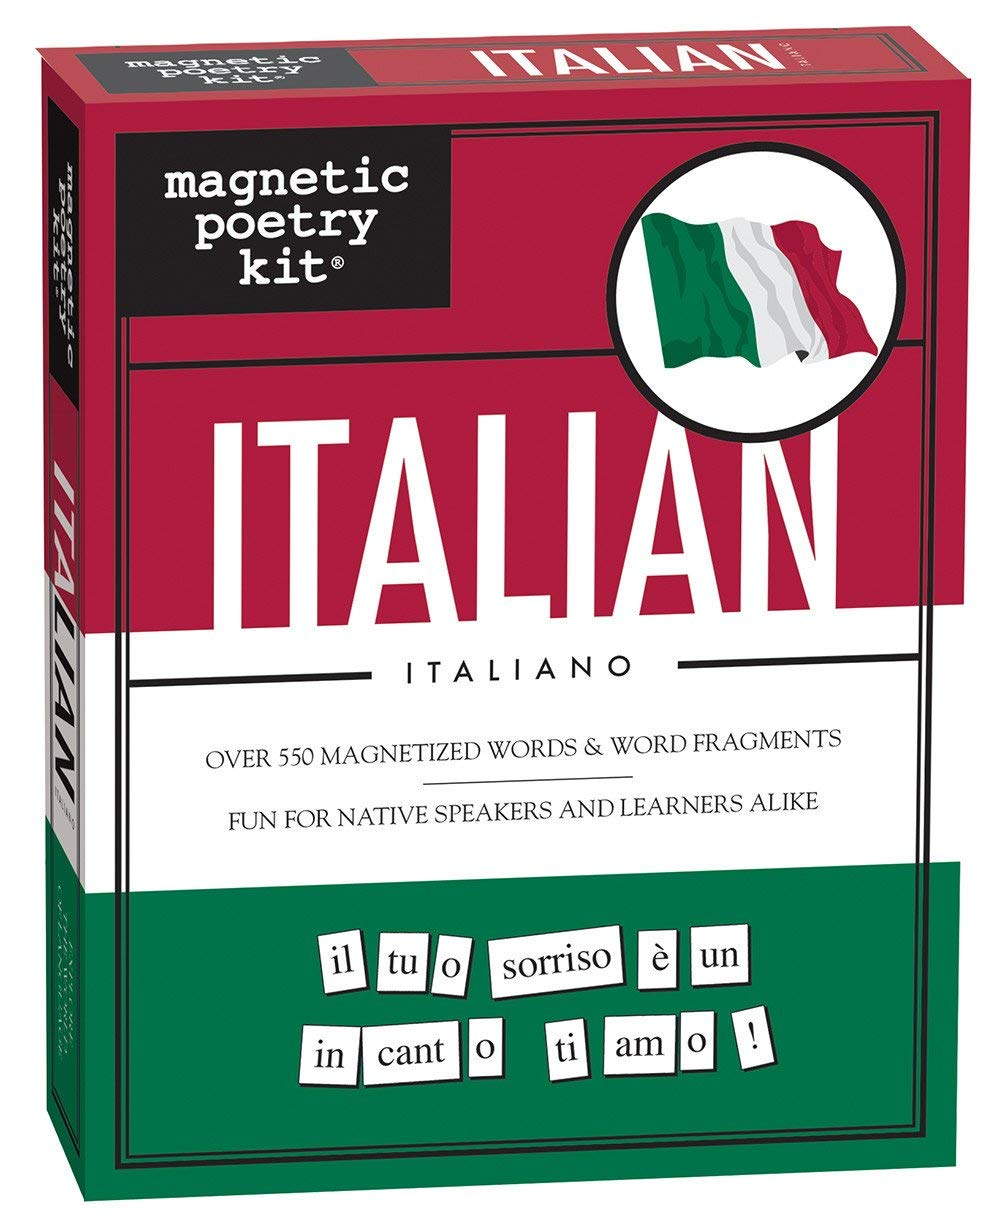 Amazon.com: Magnetic Poetry - Italian Kit - Words for Refrigerator - Write  Poems and Letters on the Fridge - Made in the USA: Books: Kitchen & Dining